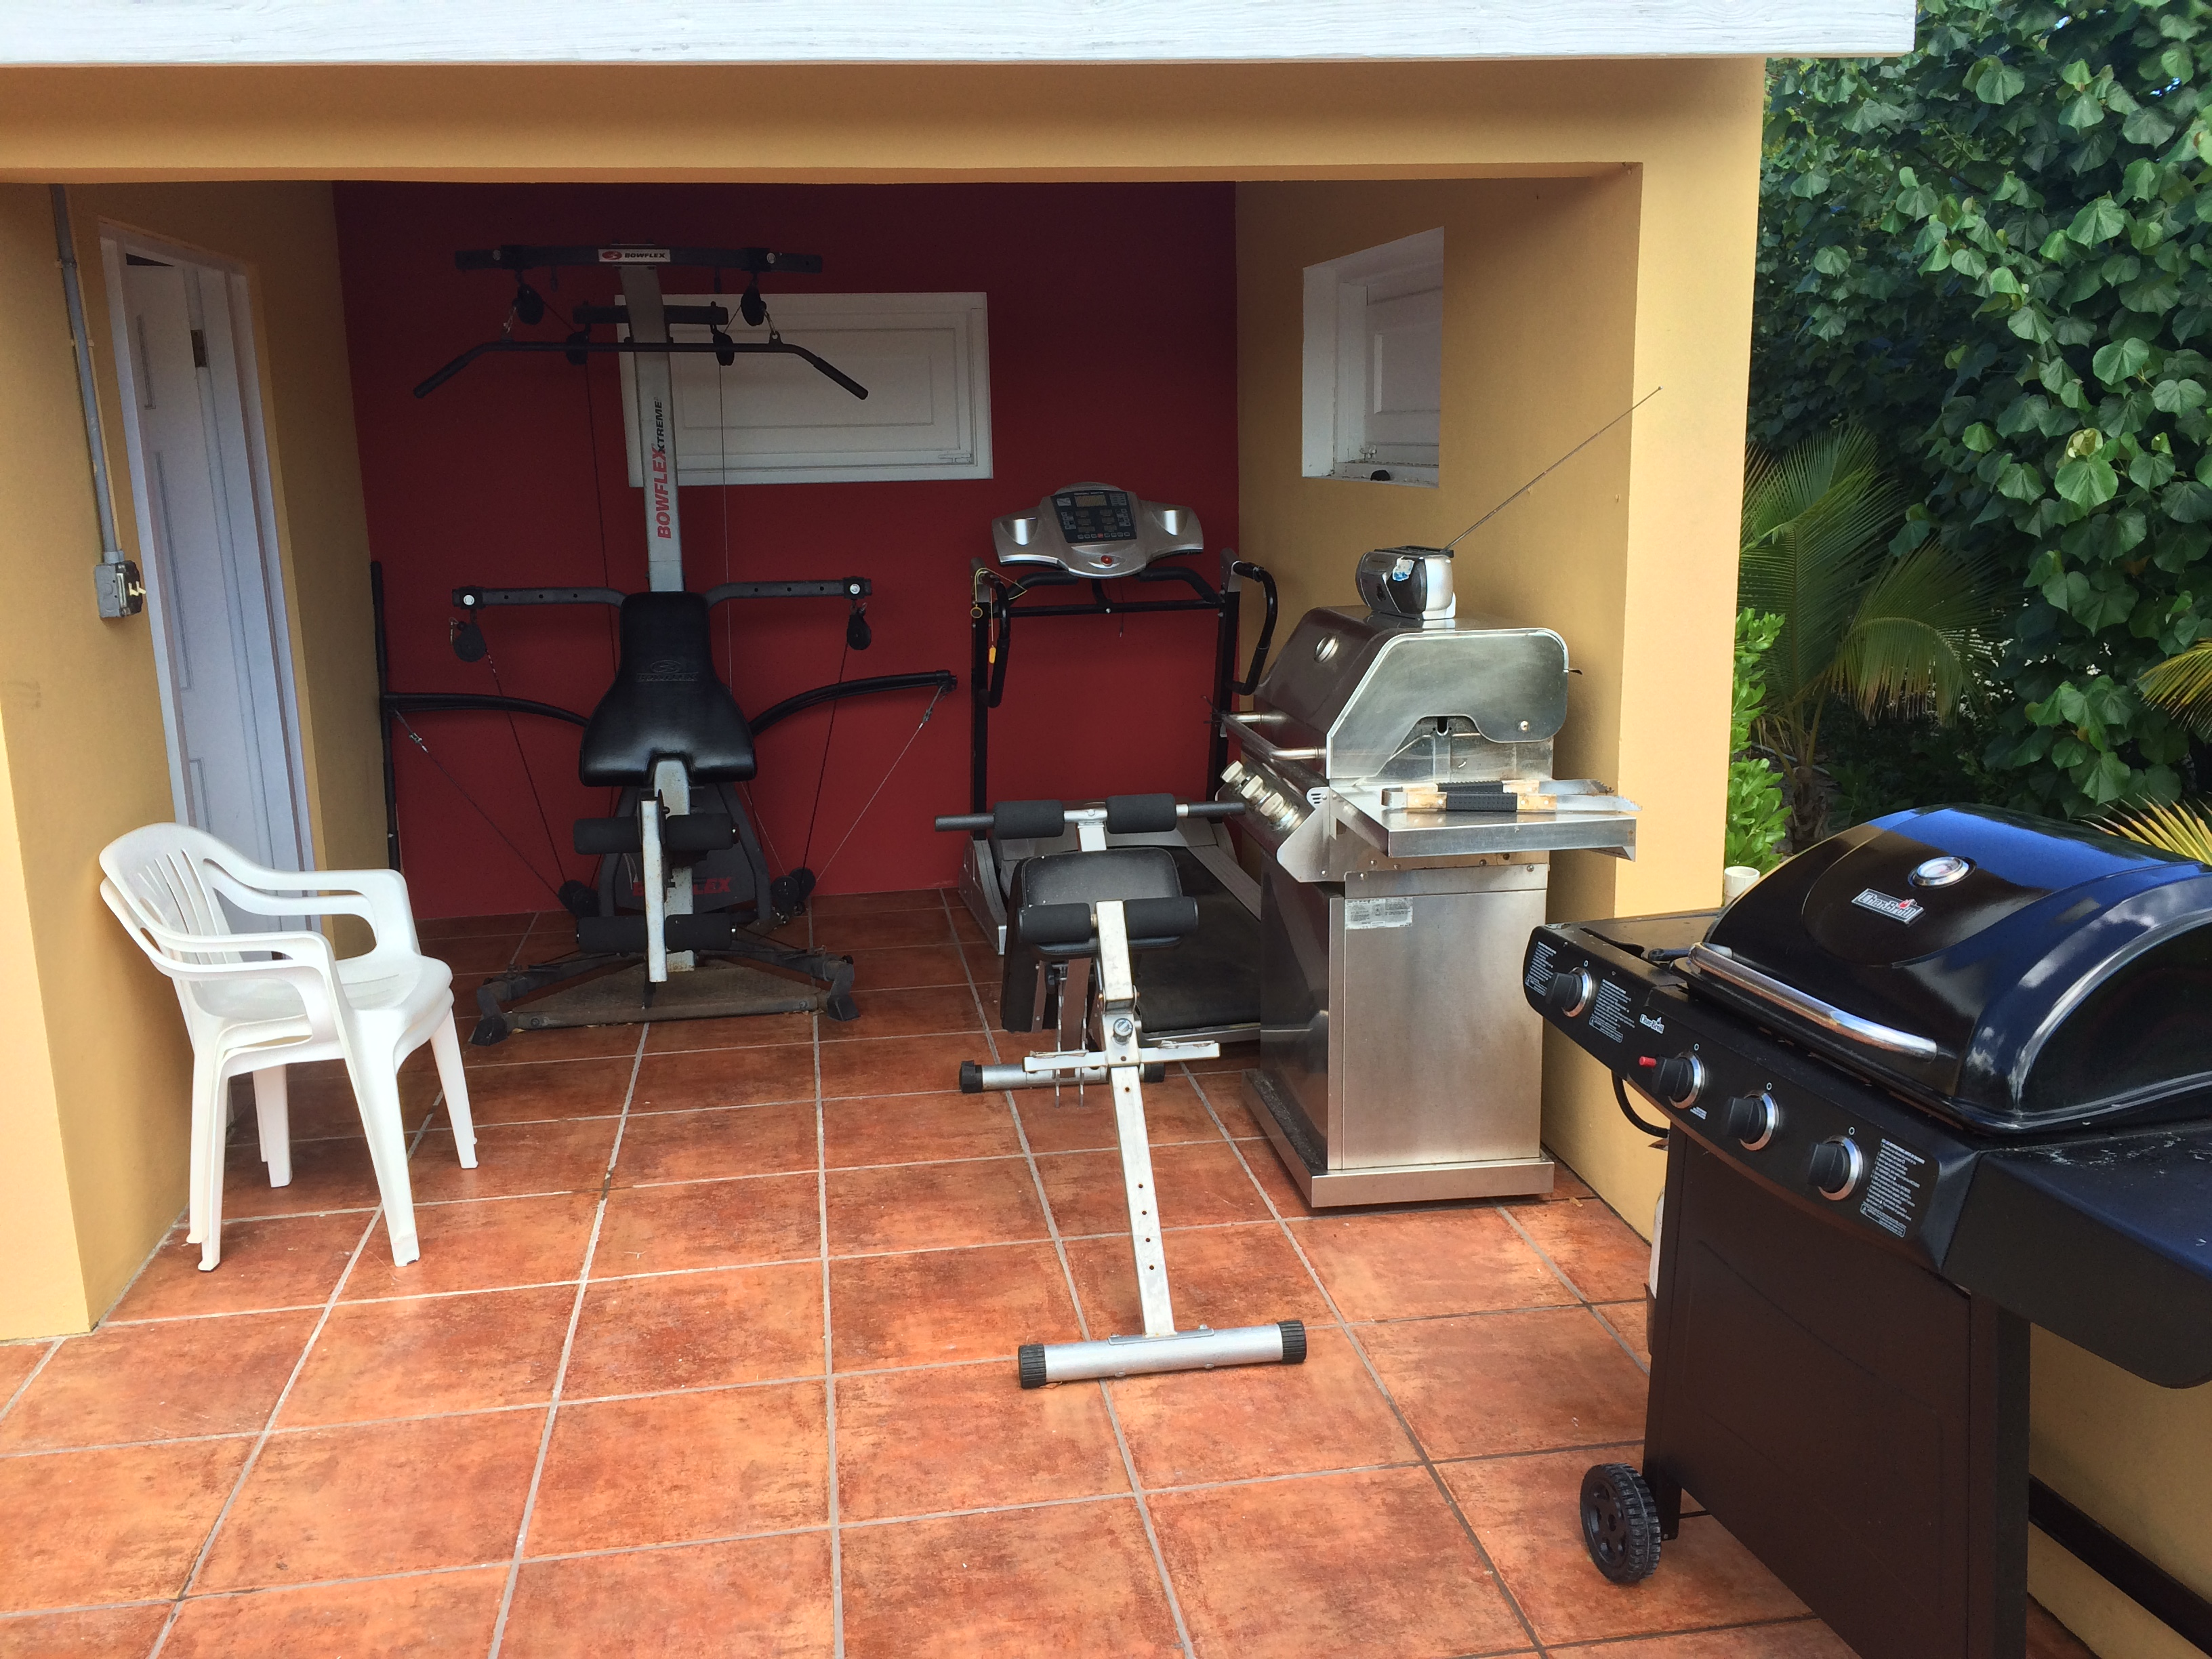 Ecercise and grill area at Provo Villa